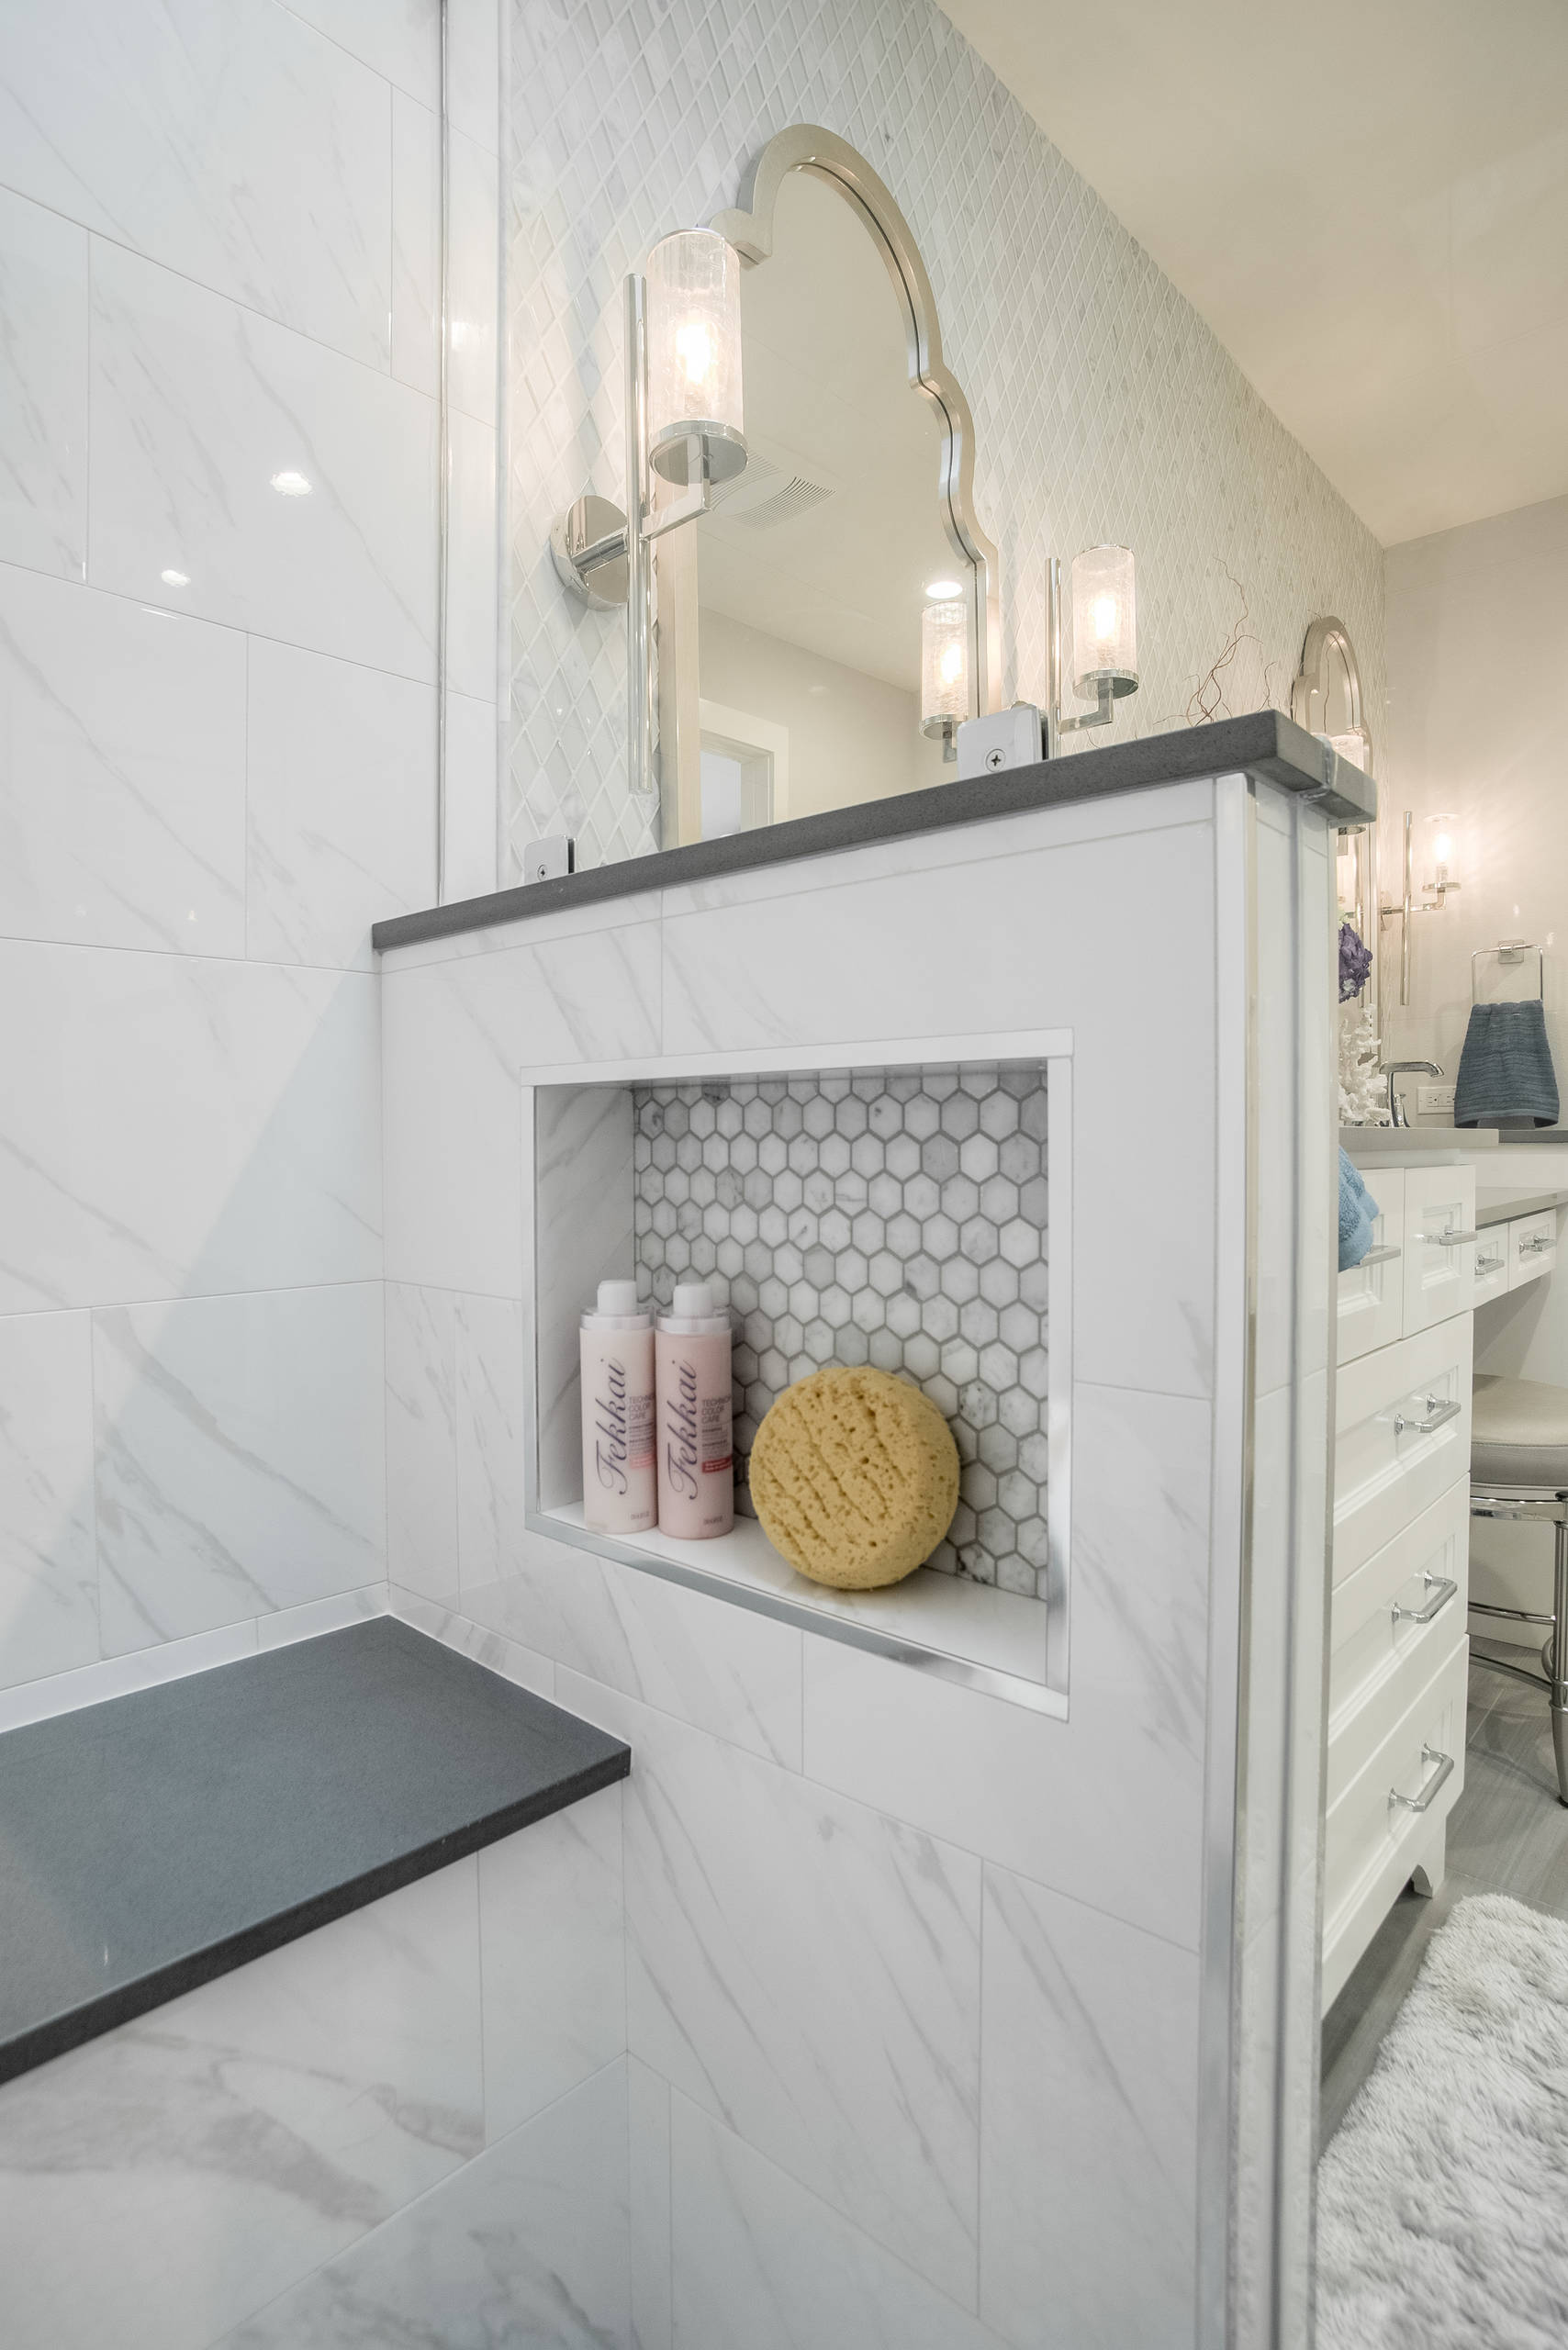 75 Beautiful Marble Tile Bathroom Pictures Ideas December 2020 Houzz